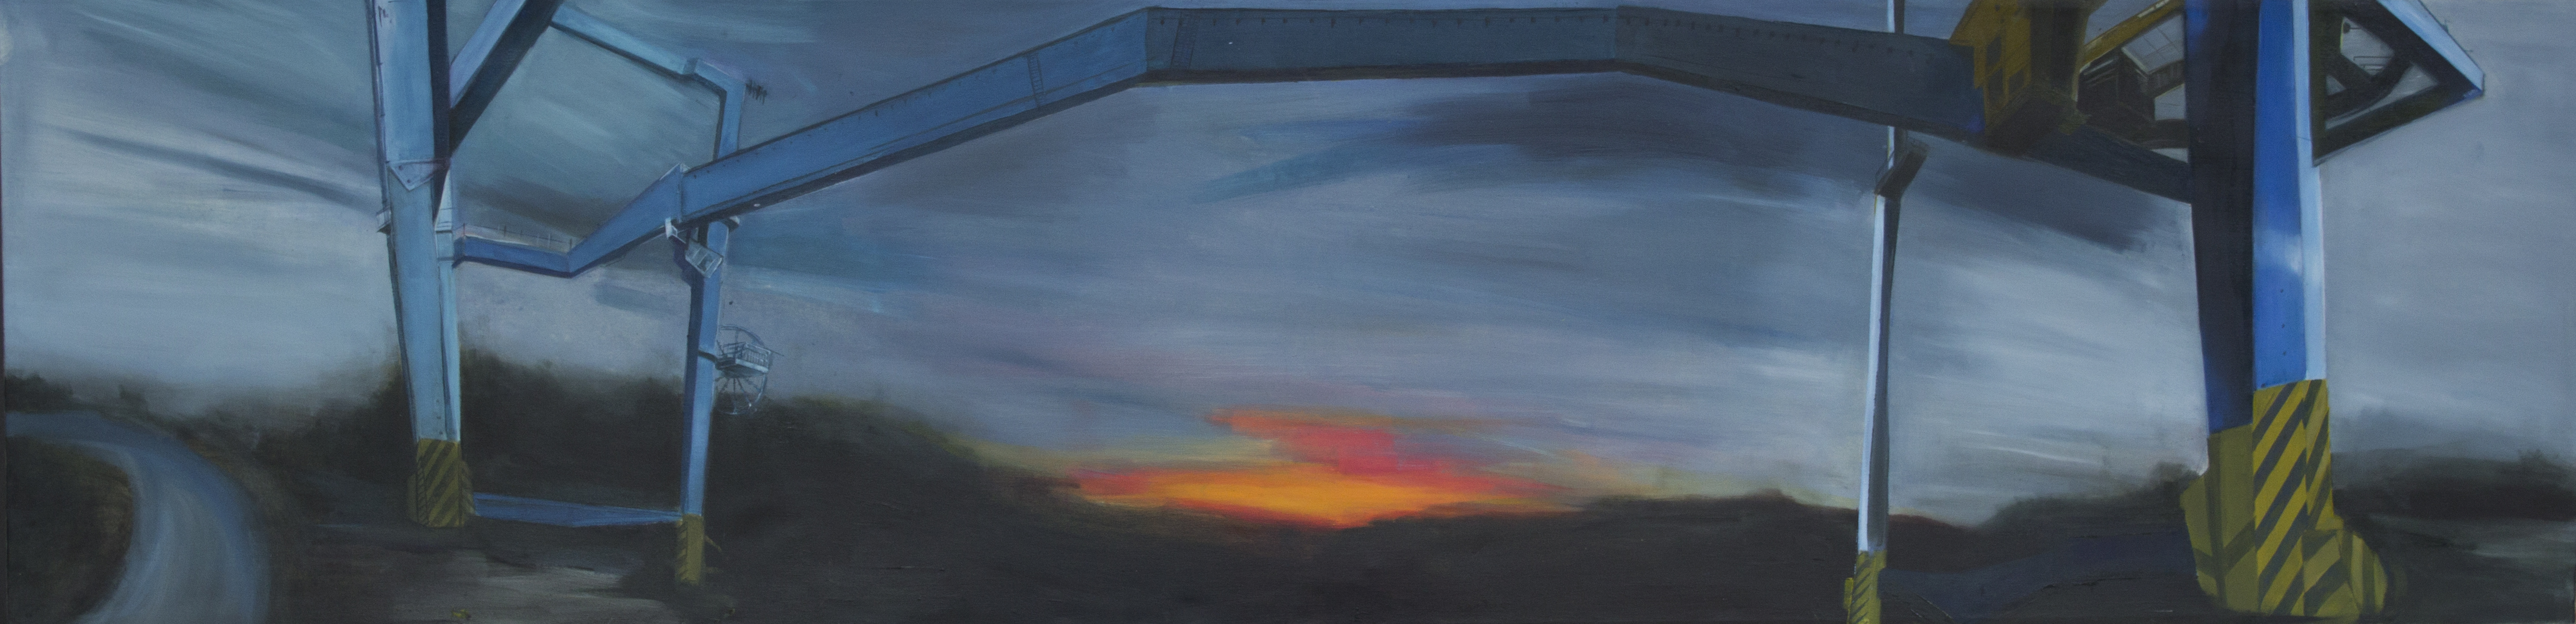 Untitled,  oil on canvas, 200 ×  50 cm, 2015.